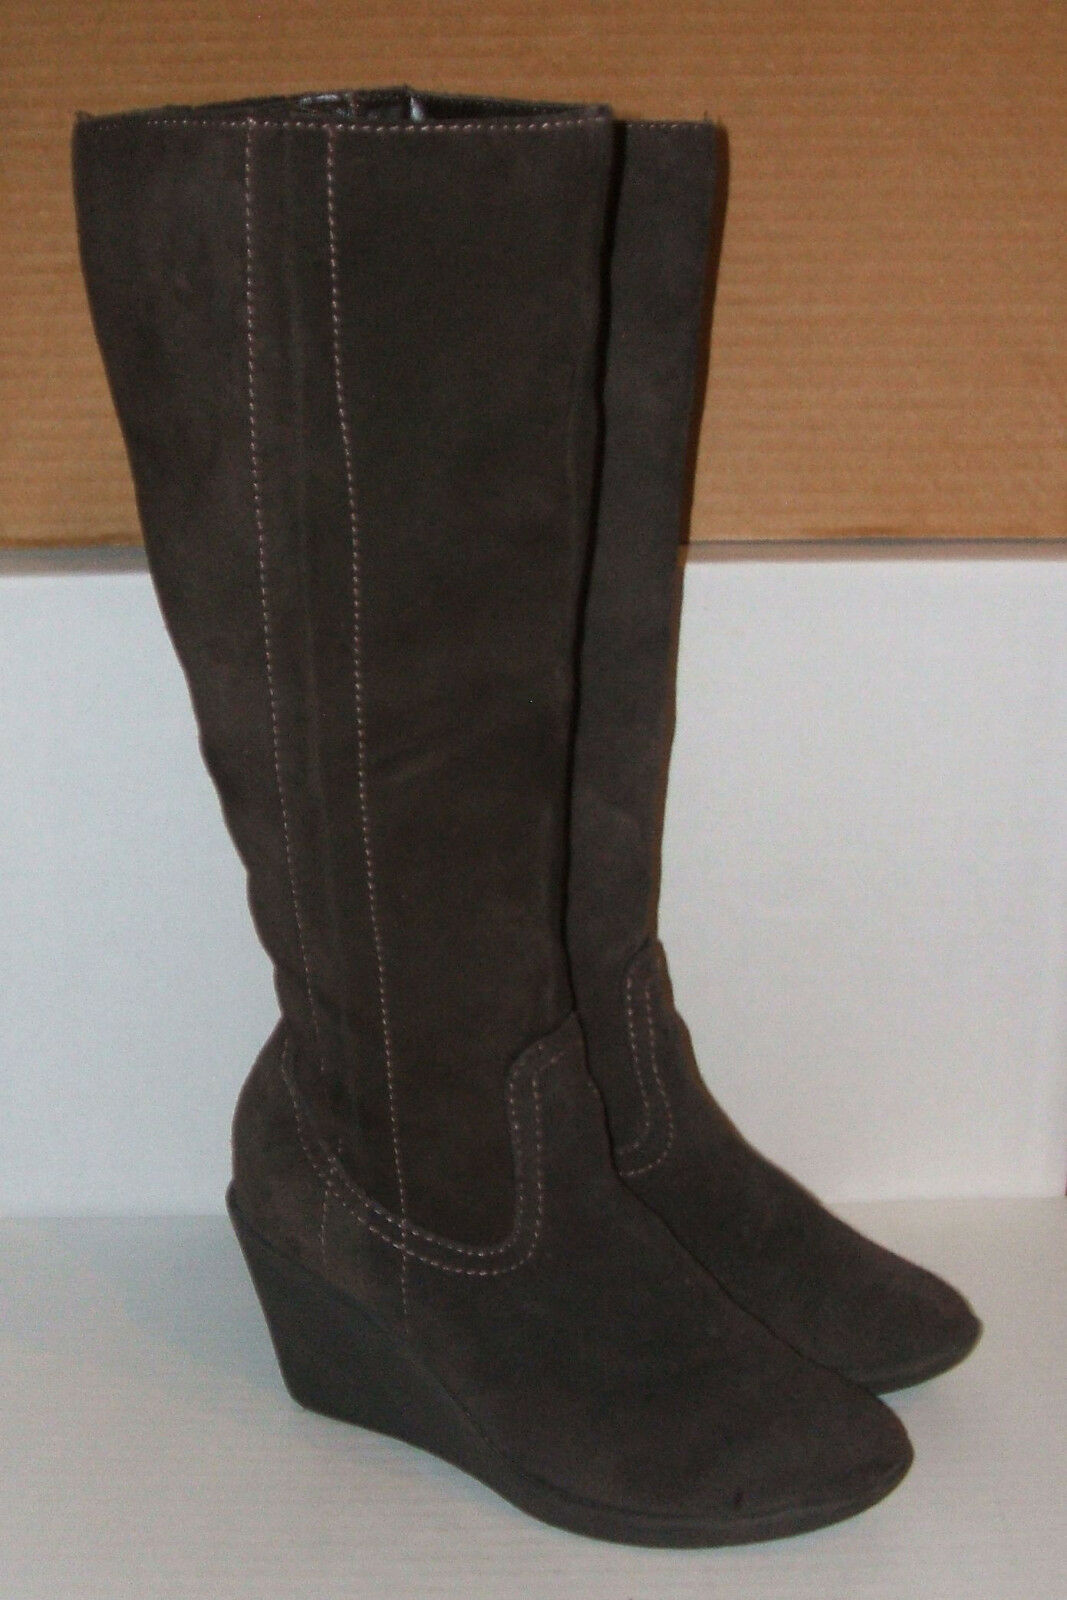 EUROSOFT SOFFT Women's Brown Suede Zip Knee-High Wedge Dress Boots 7.5 M + BONUS